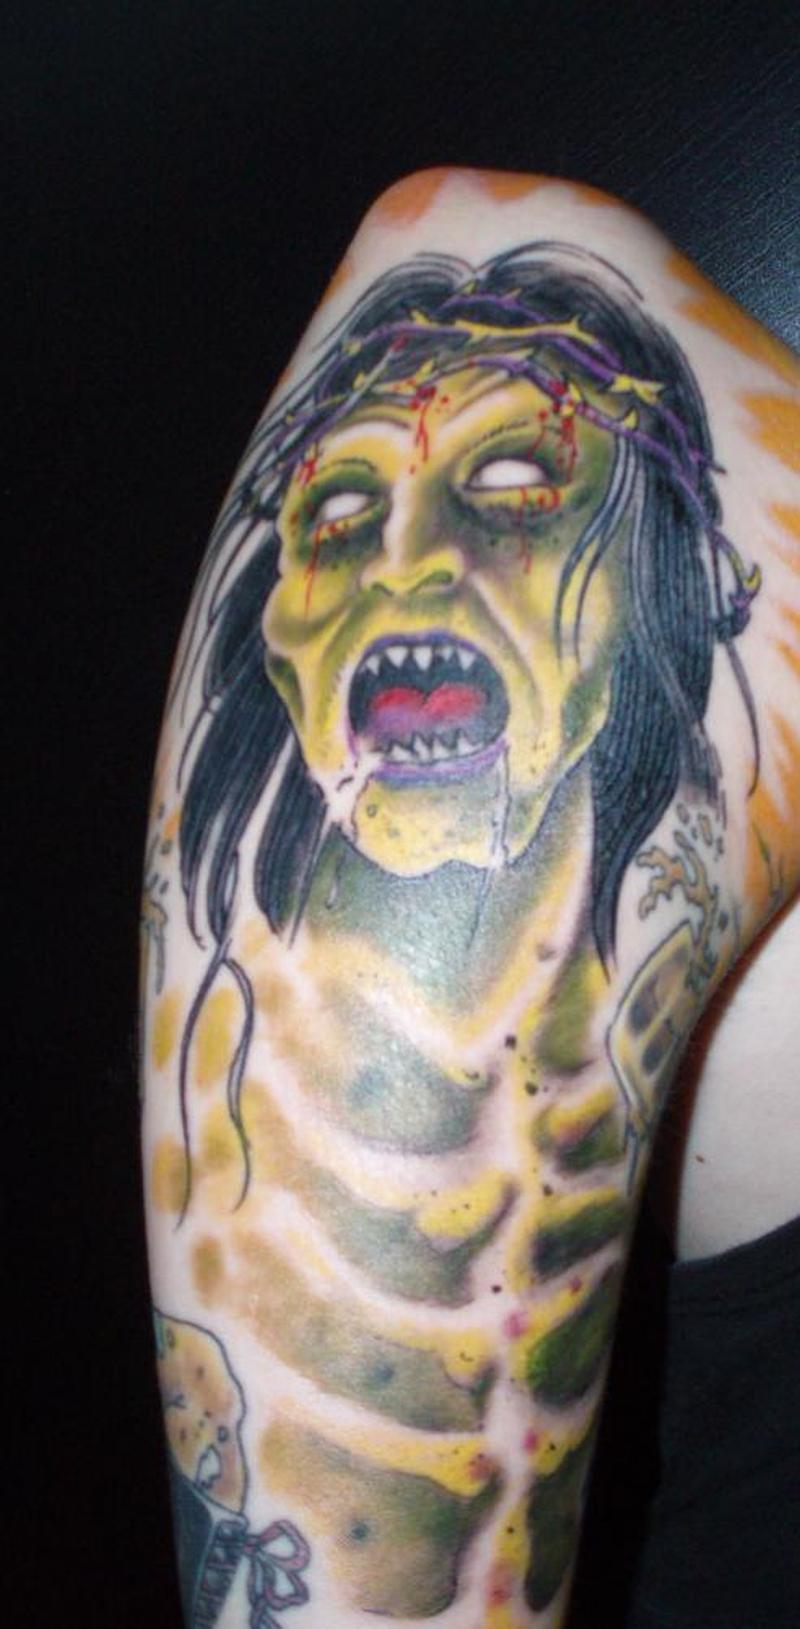 Zombie jesus tattoo on sleeve